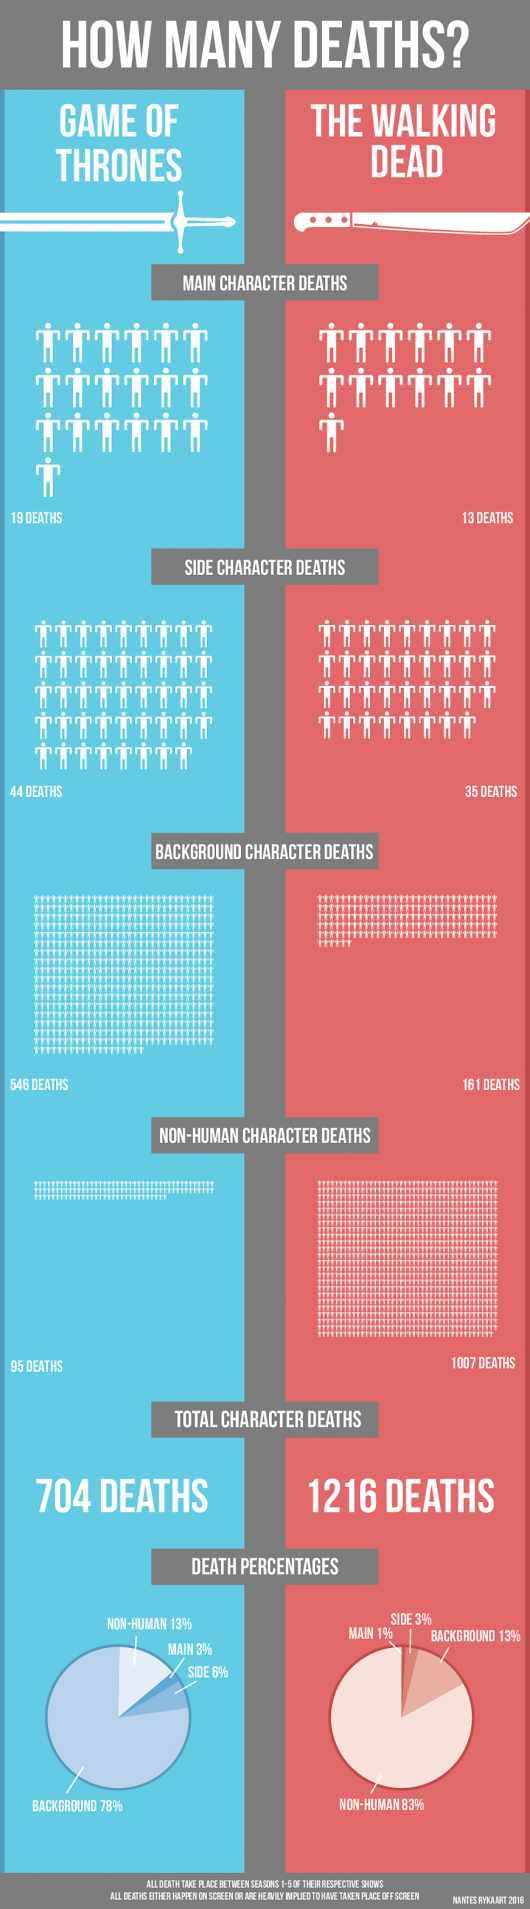 The Walking Dead and Game of Thrones Death Count Infographic